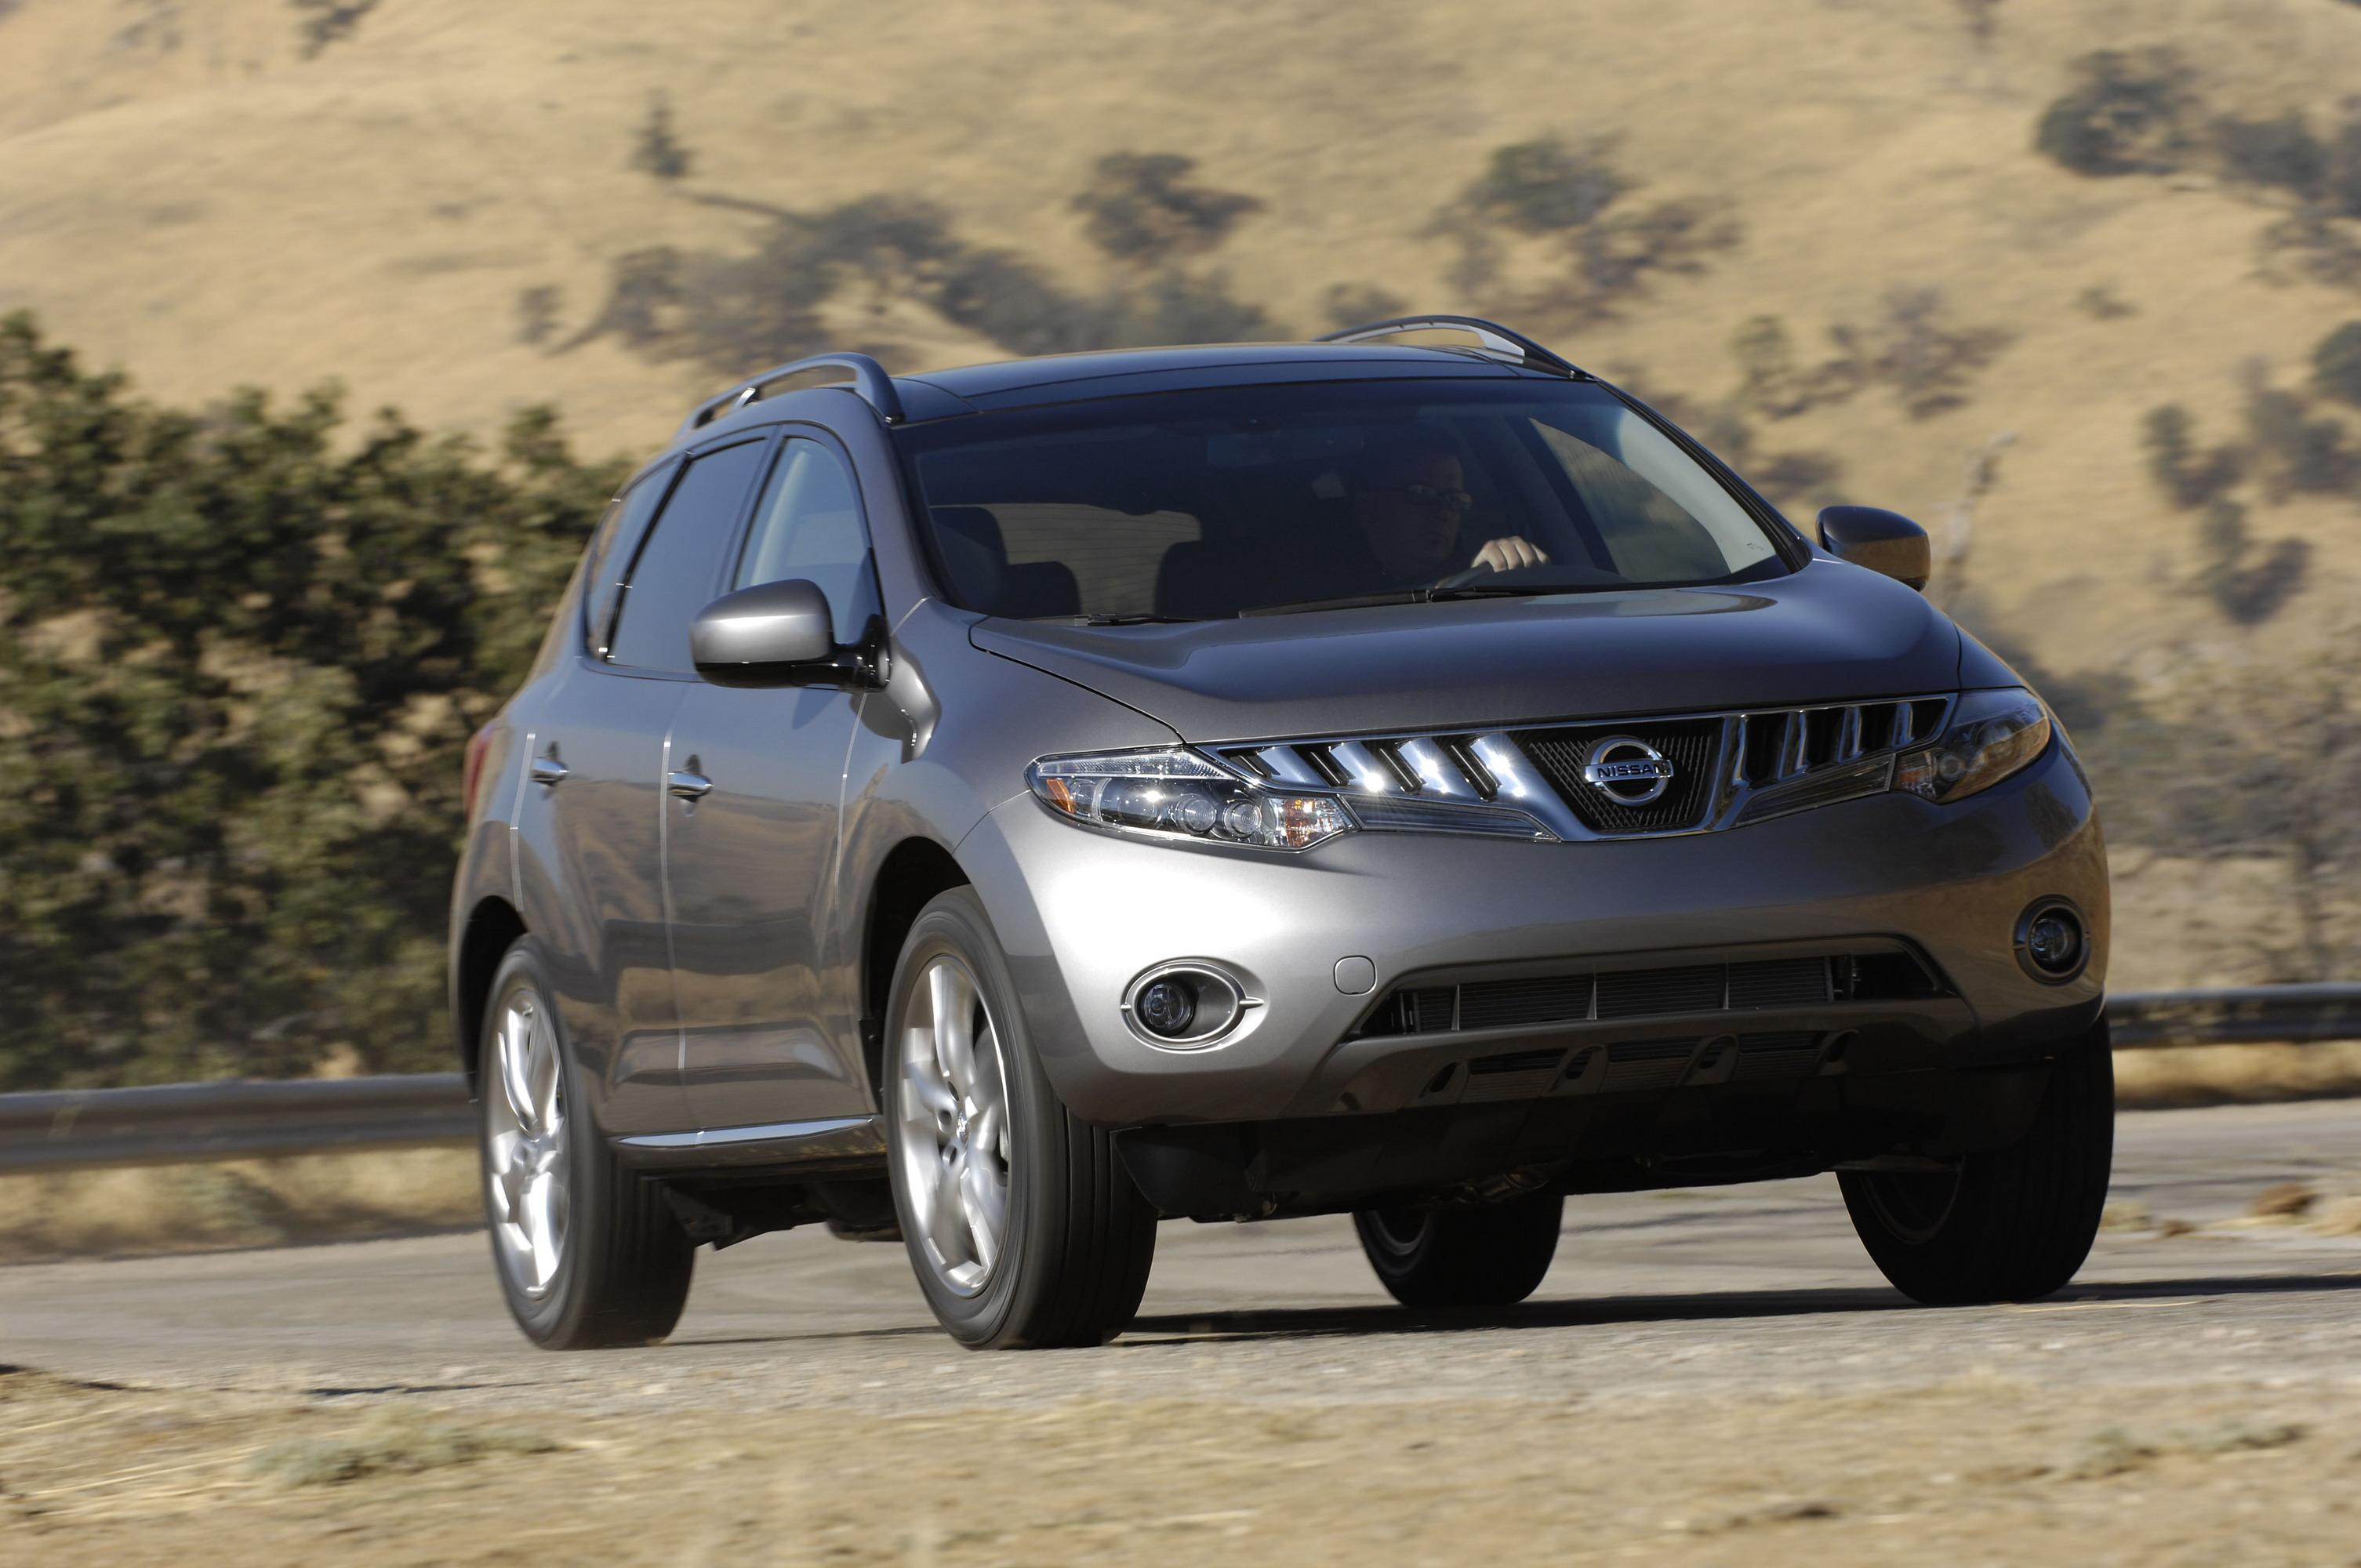 specs murano price nissan wallpaper information pictures